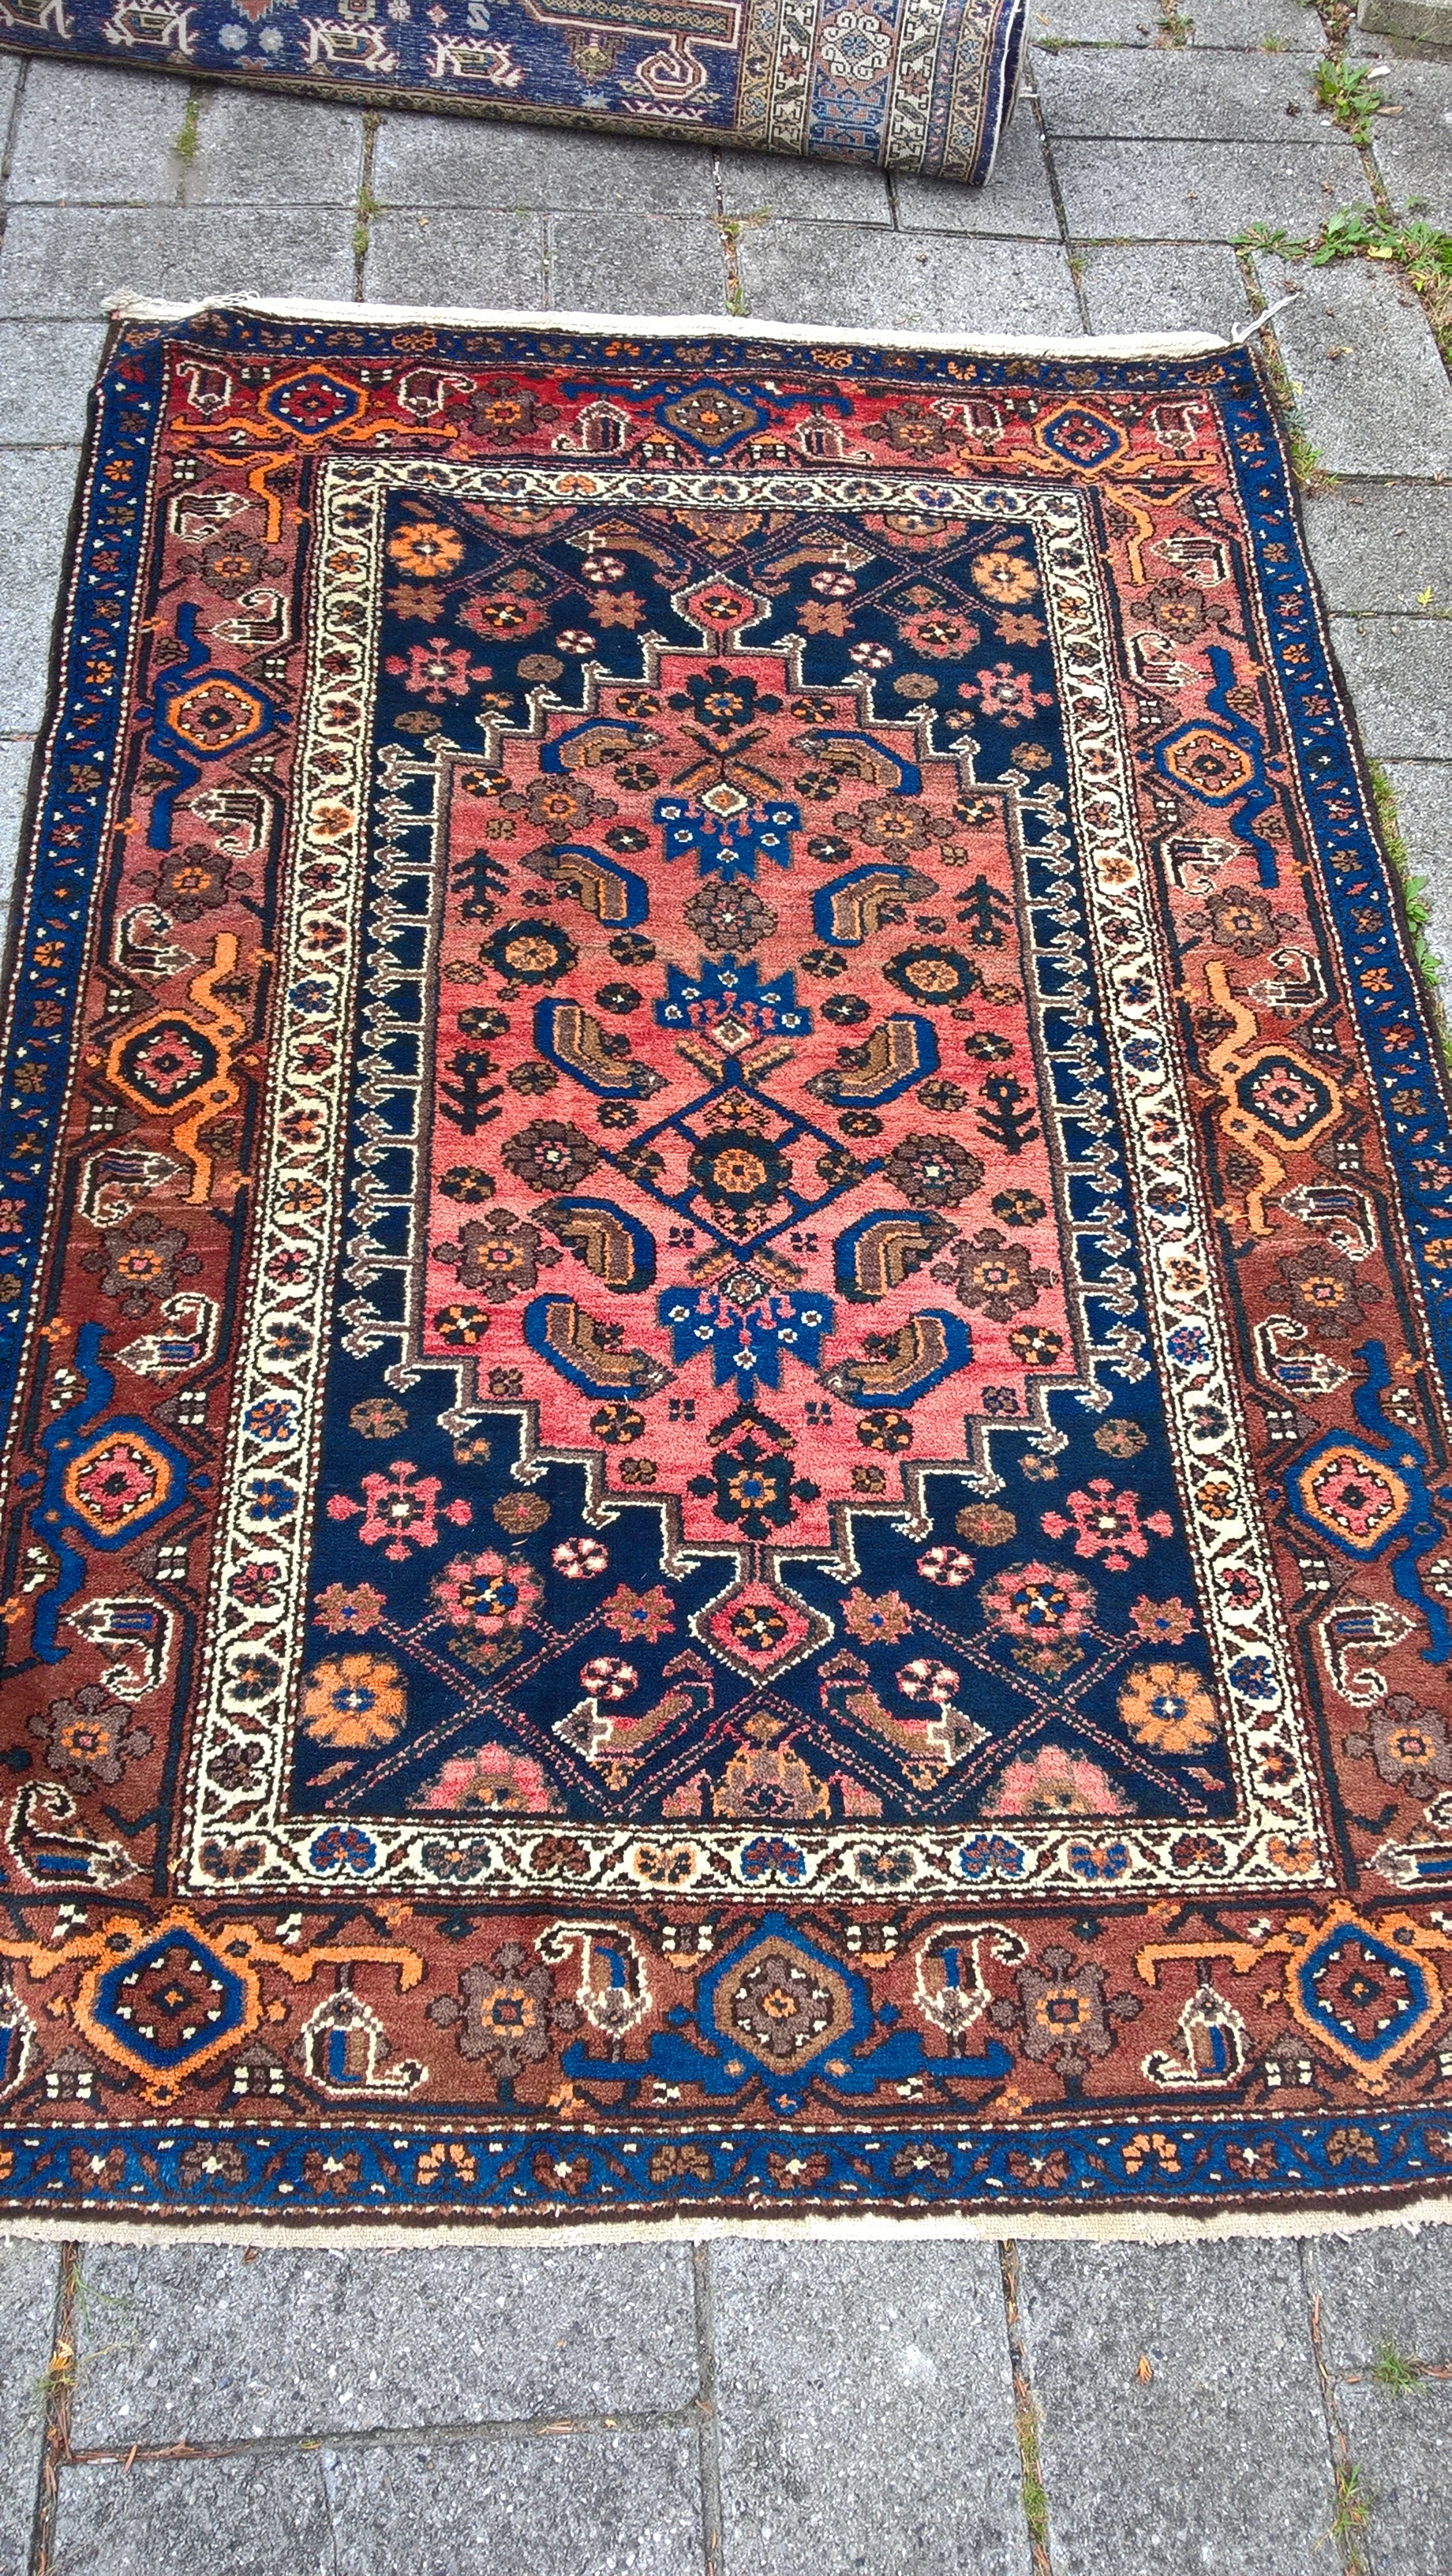 Varenr. Rug16-3460-09-bluebluebrown